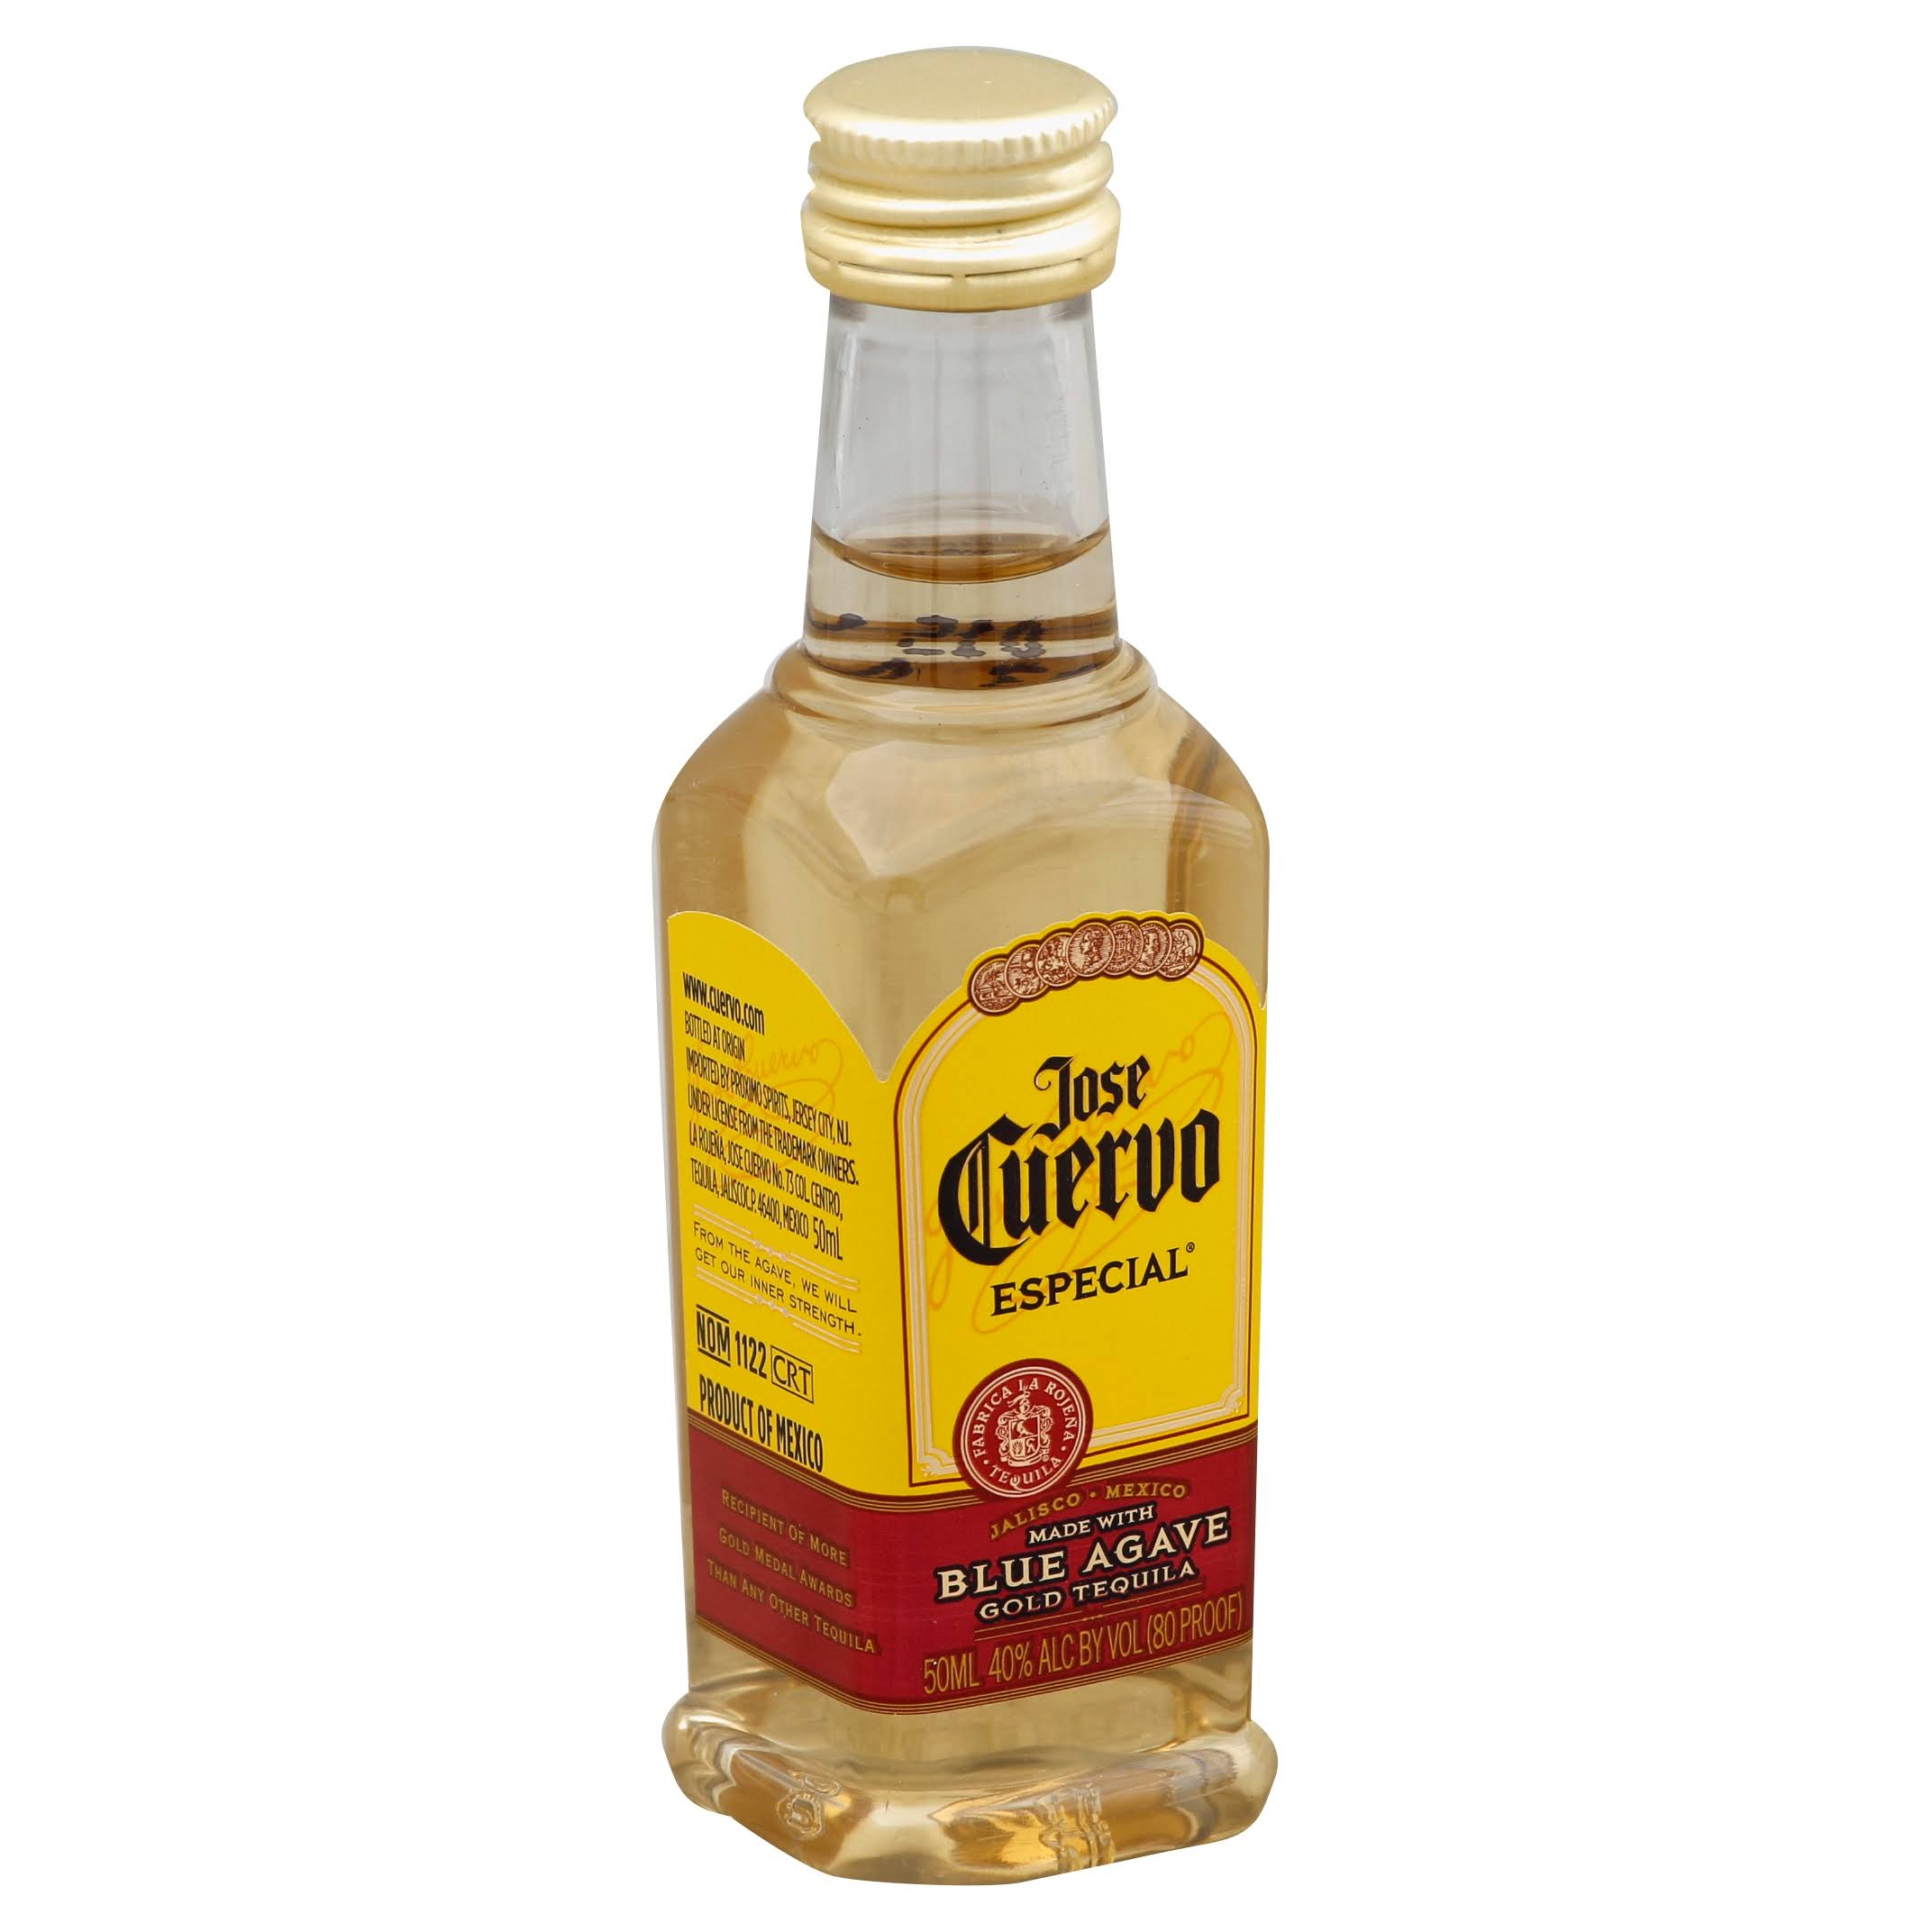 Jose Cuervo Especial Tequila, Gold - 50 ml